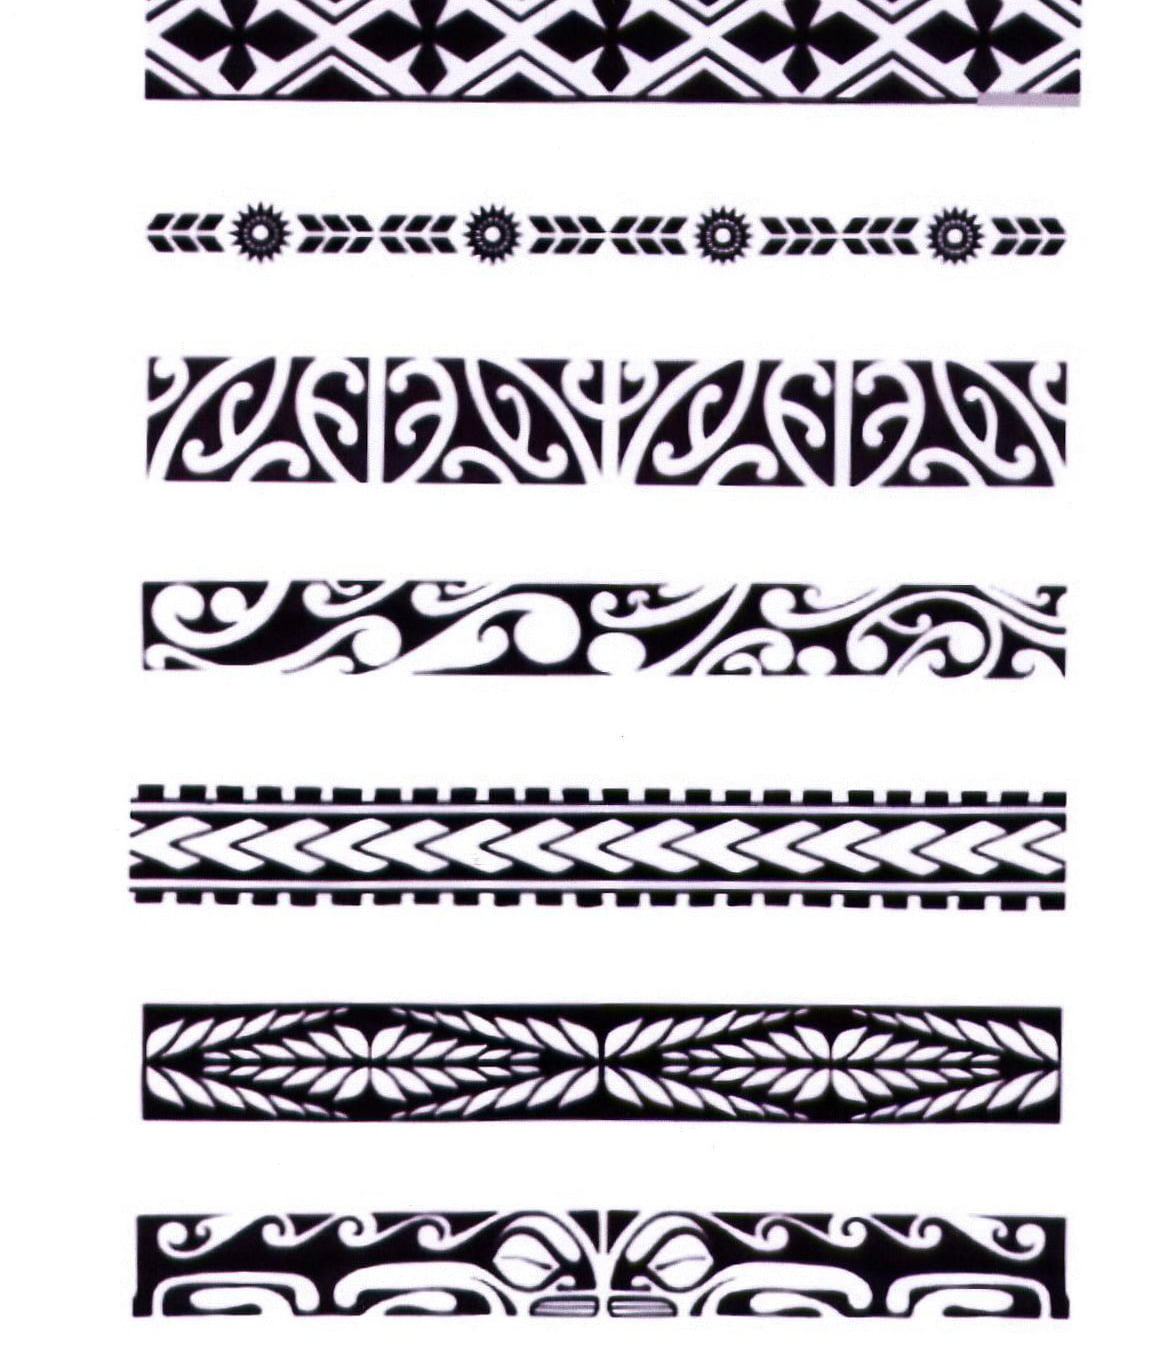 the gallery for polynesian wristband tattoos. Black Bedroom Furniture Sets. Home Design Ideas